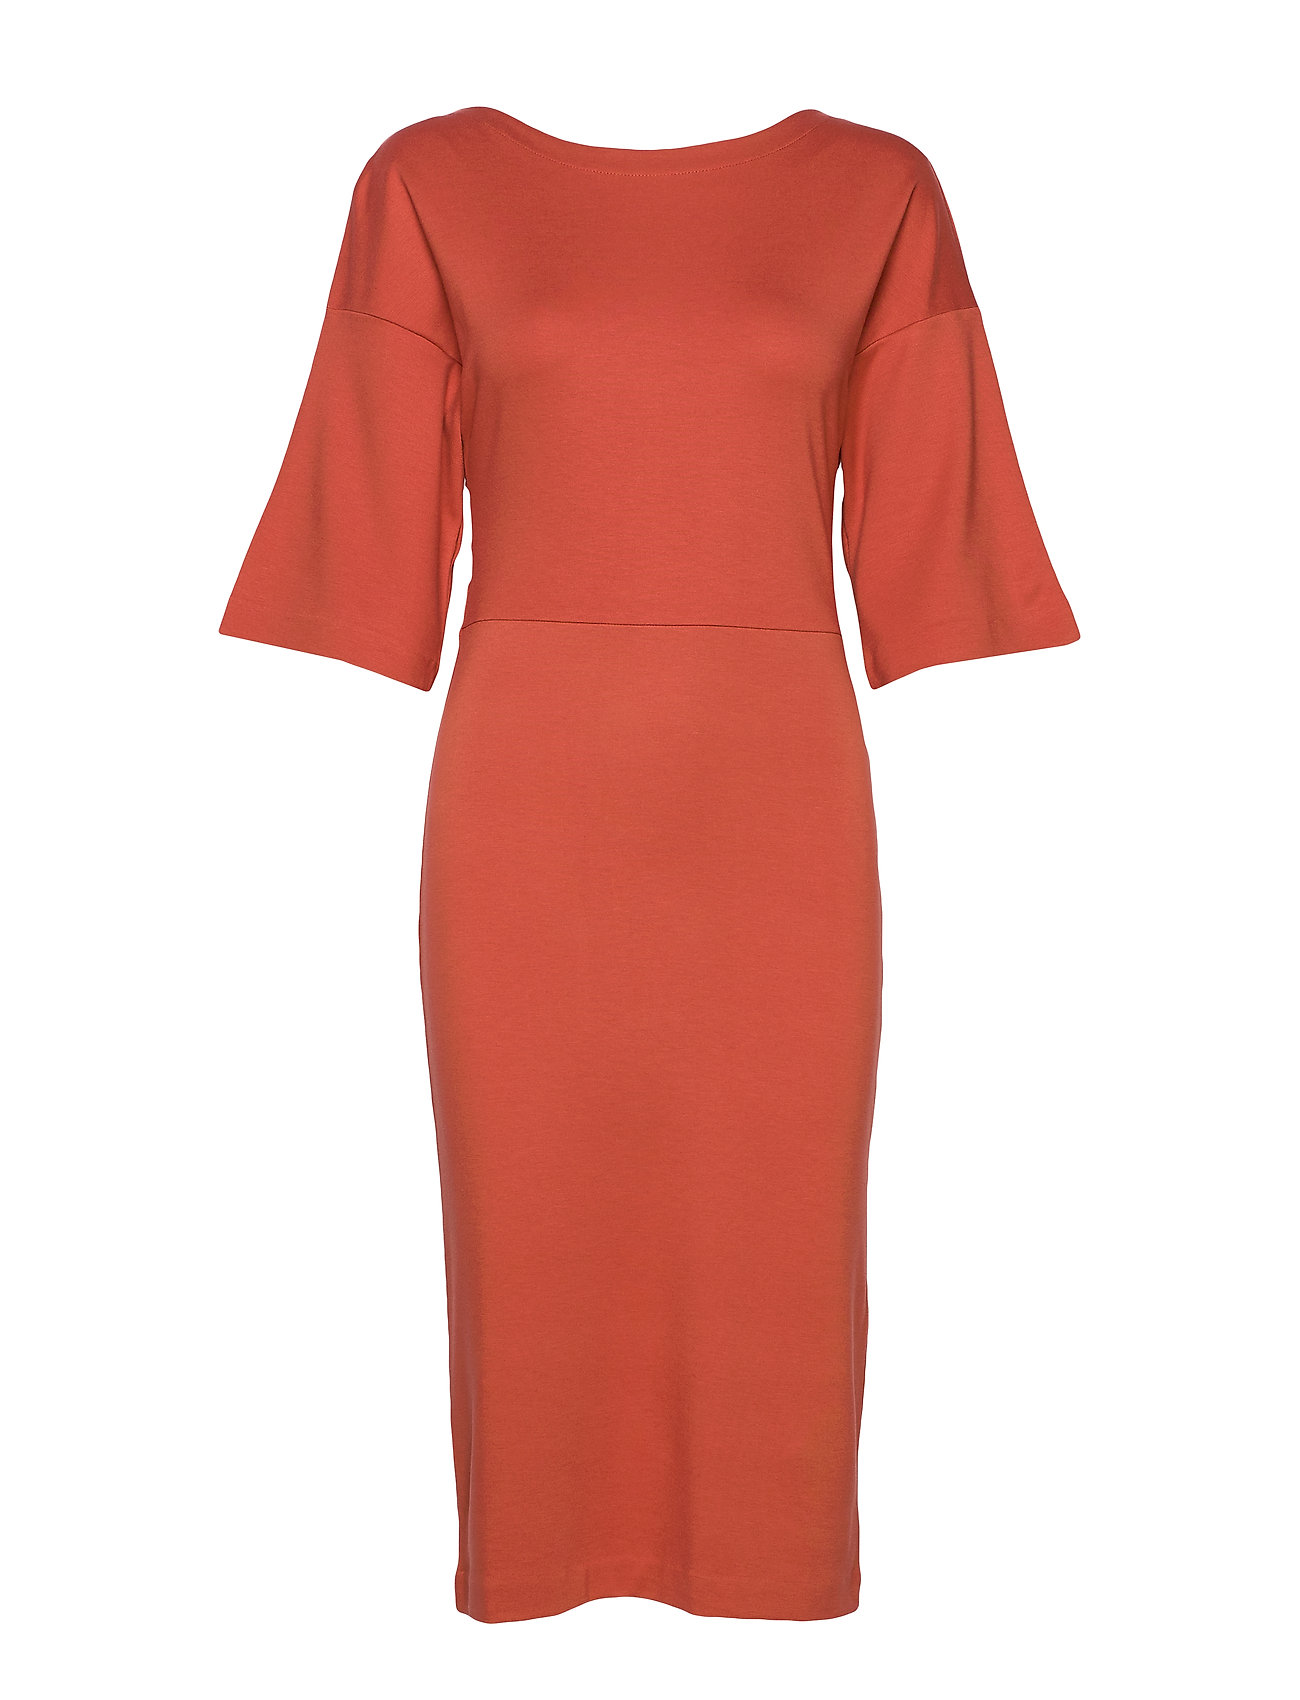 Residus WINIFRED DRESS - FIG RED